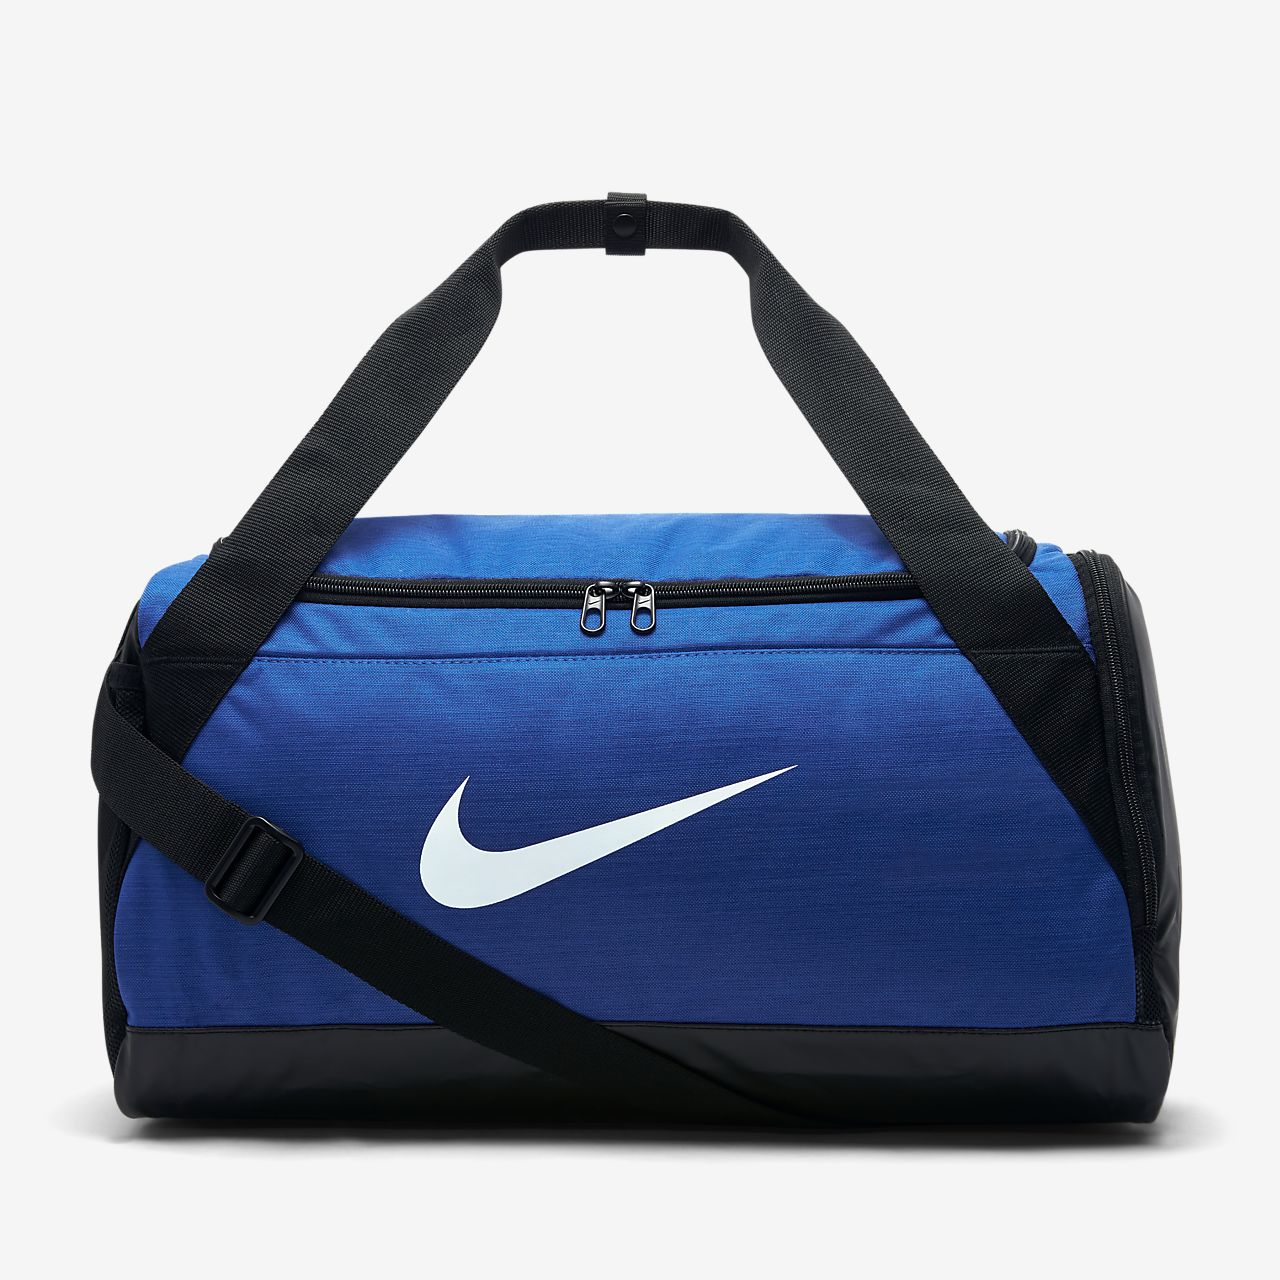 ... Nike Brasilia (Small) Training Duffel Bag 8617b2231d74a